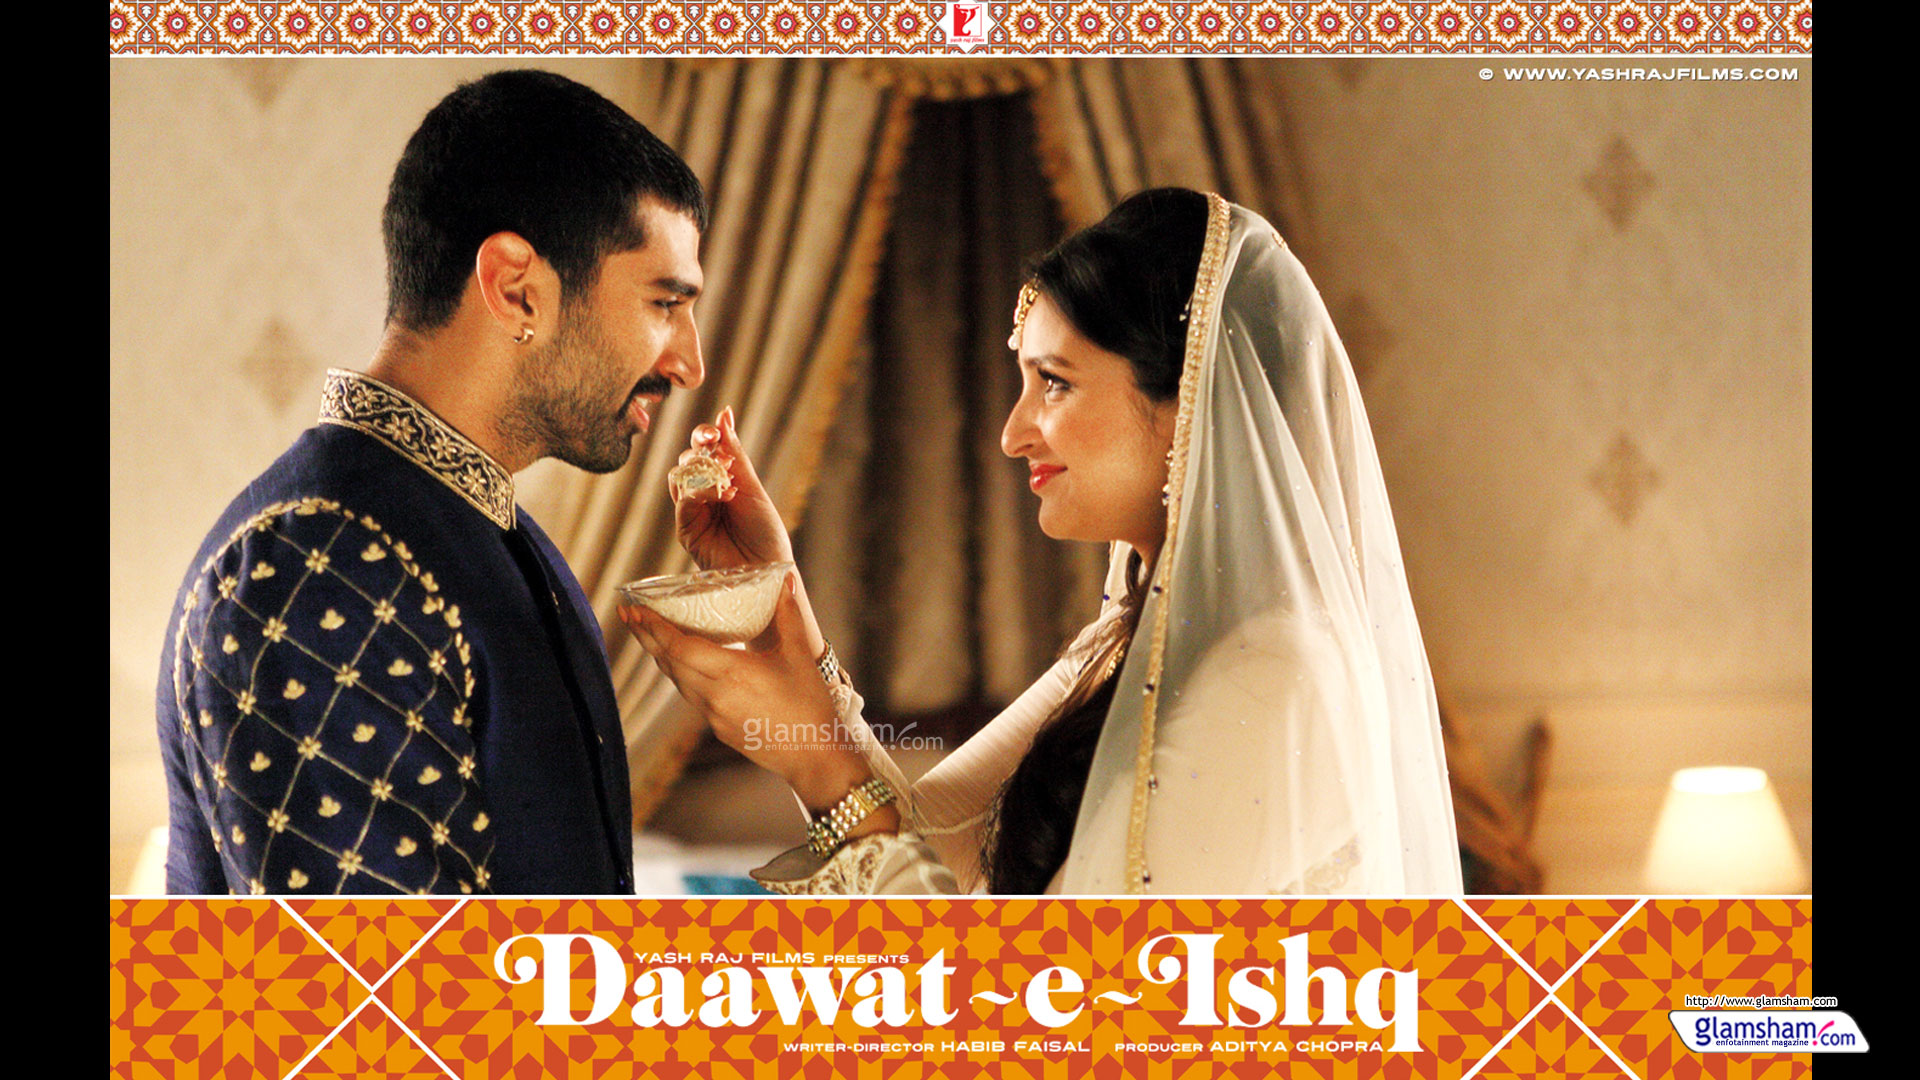 Daawat-e-Ishq (2014) Hindi Movie 300MB Free Download Full HD 720p